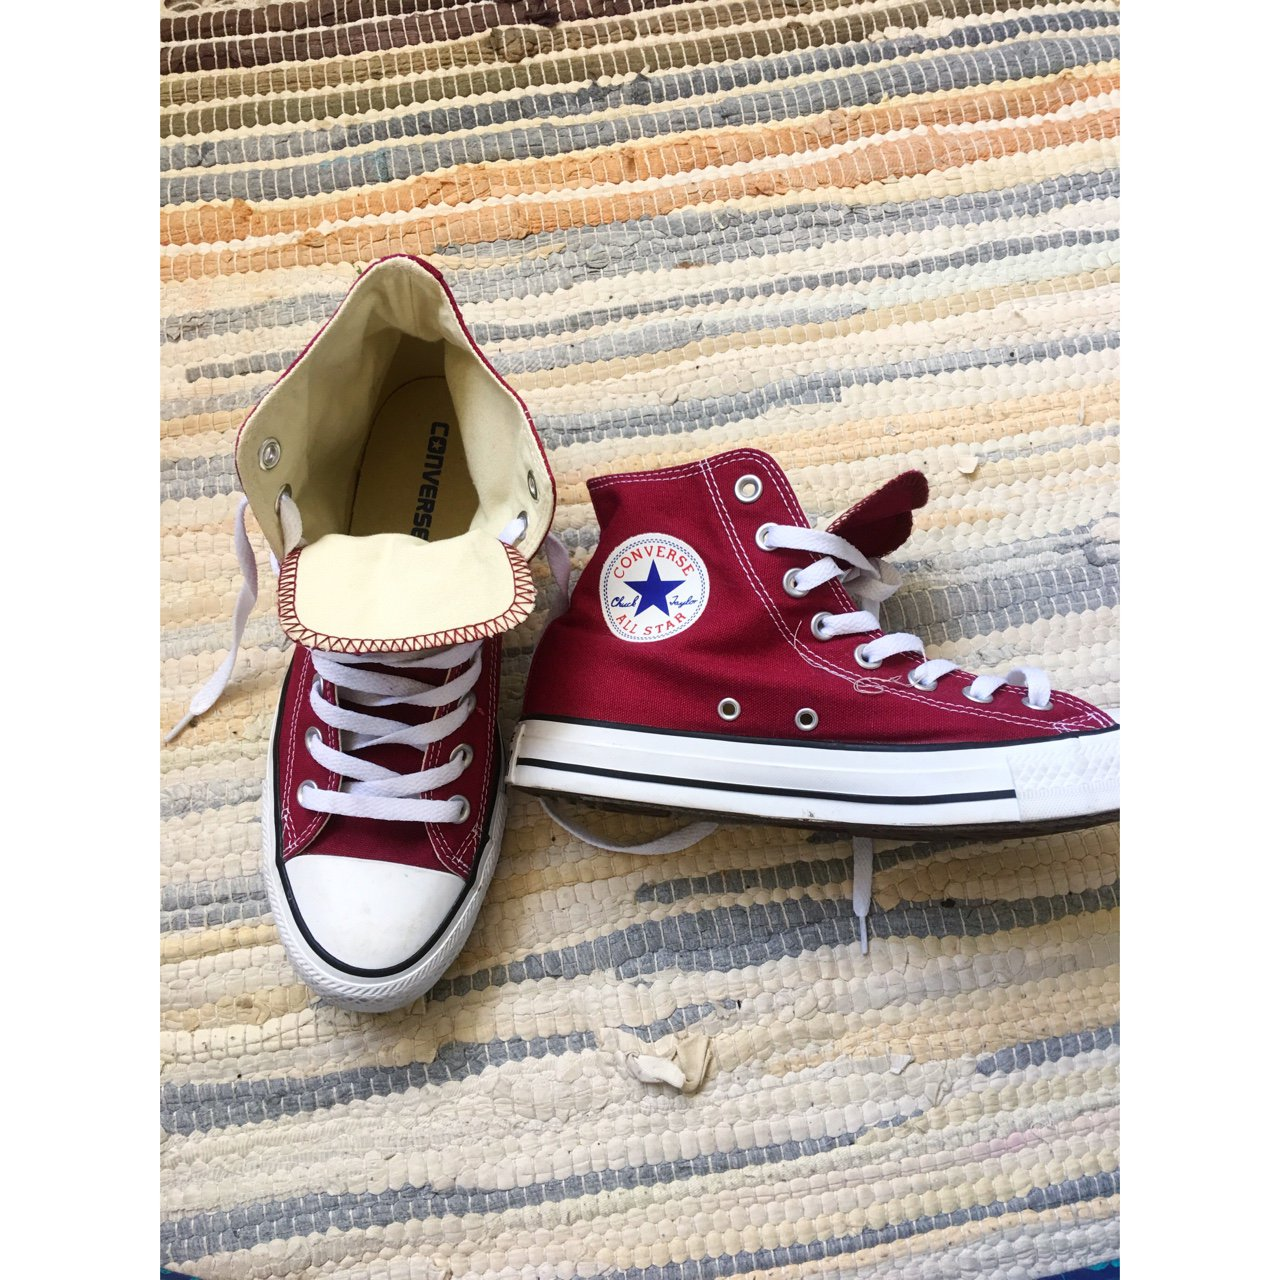 fea58ad2632 Converse. High tops. Red. UK size 7. Worn 3 times most as on - Depop